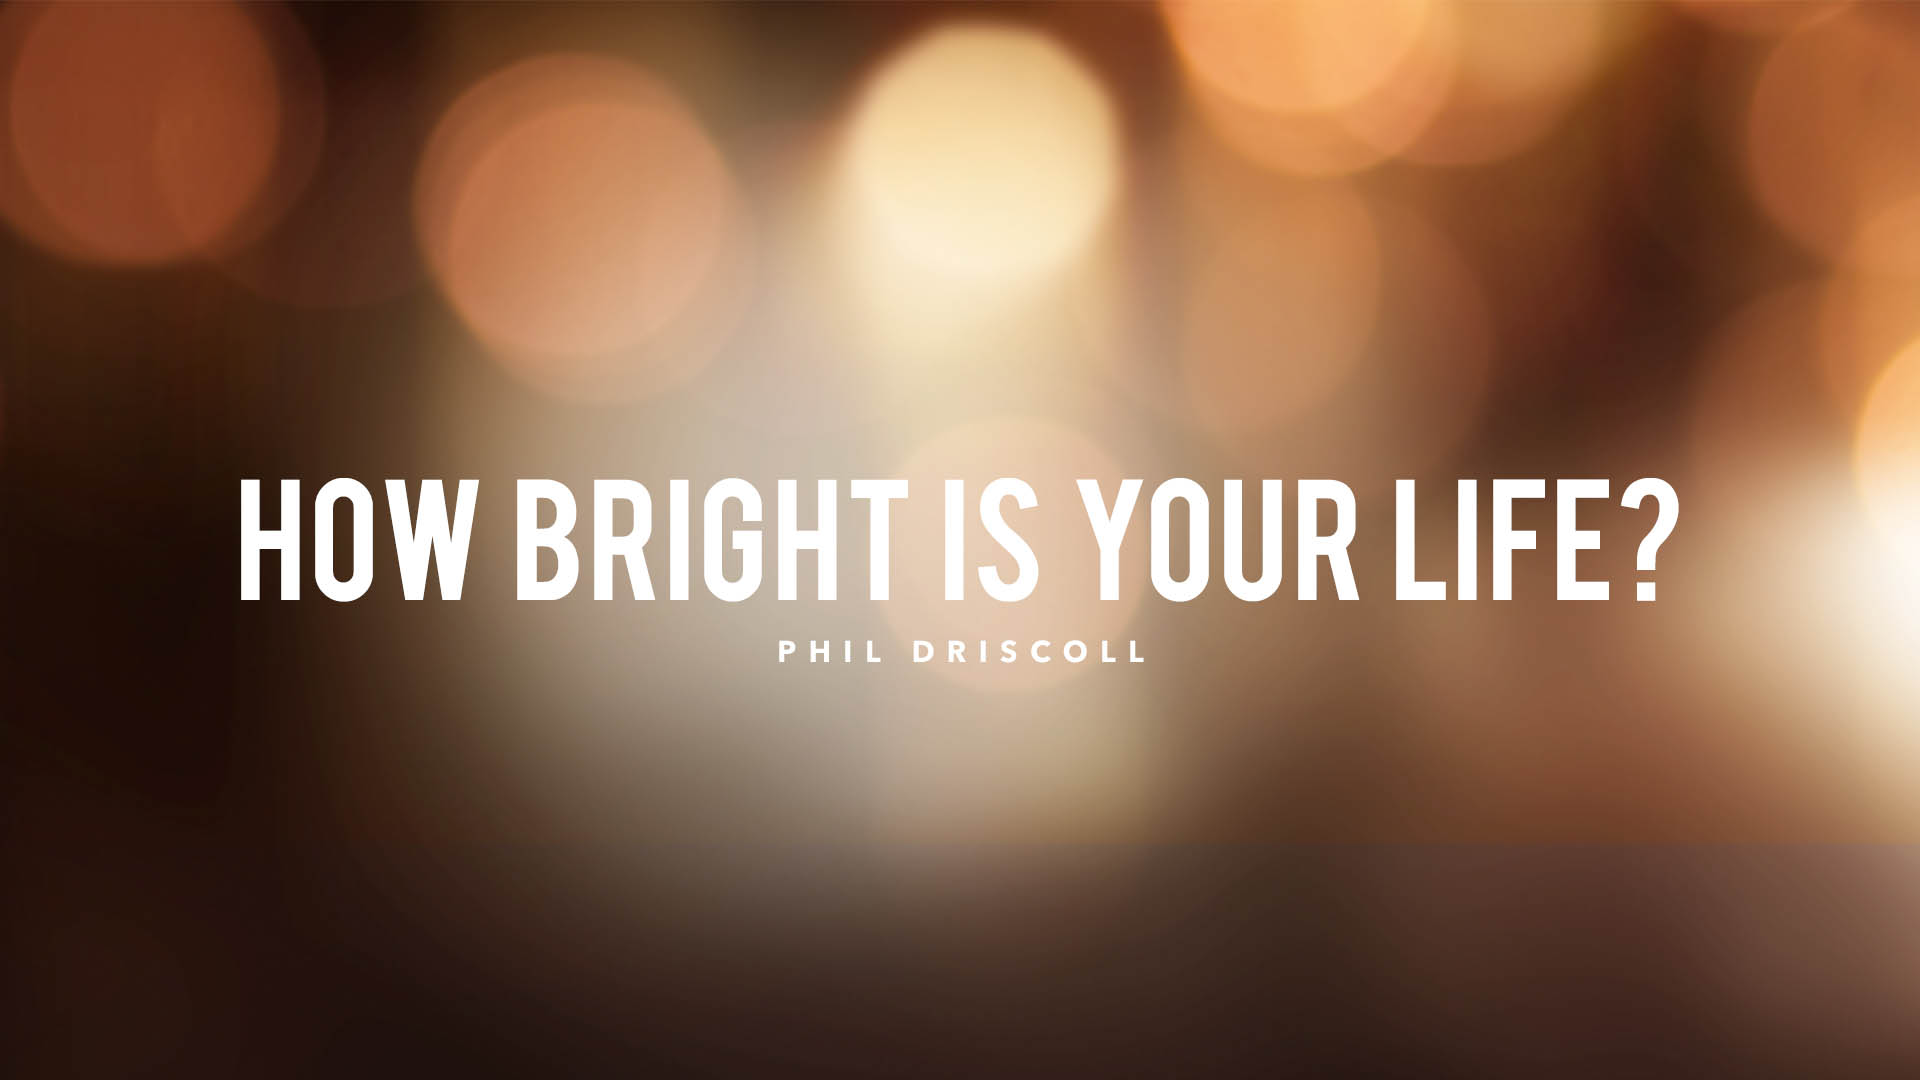 12-23-18 PD How Bright Is Your Life?